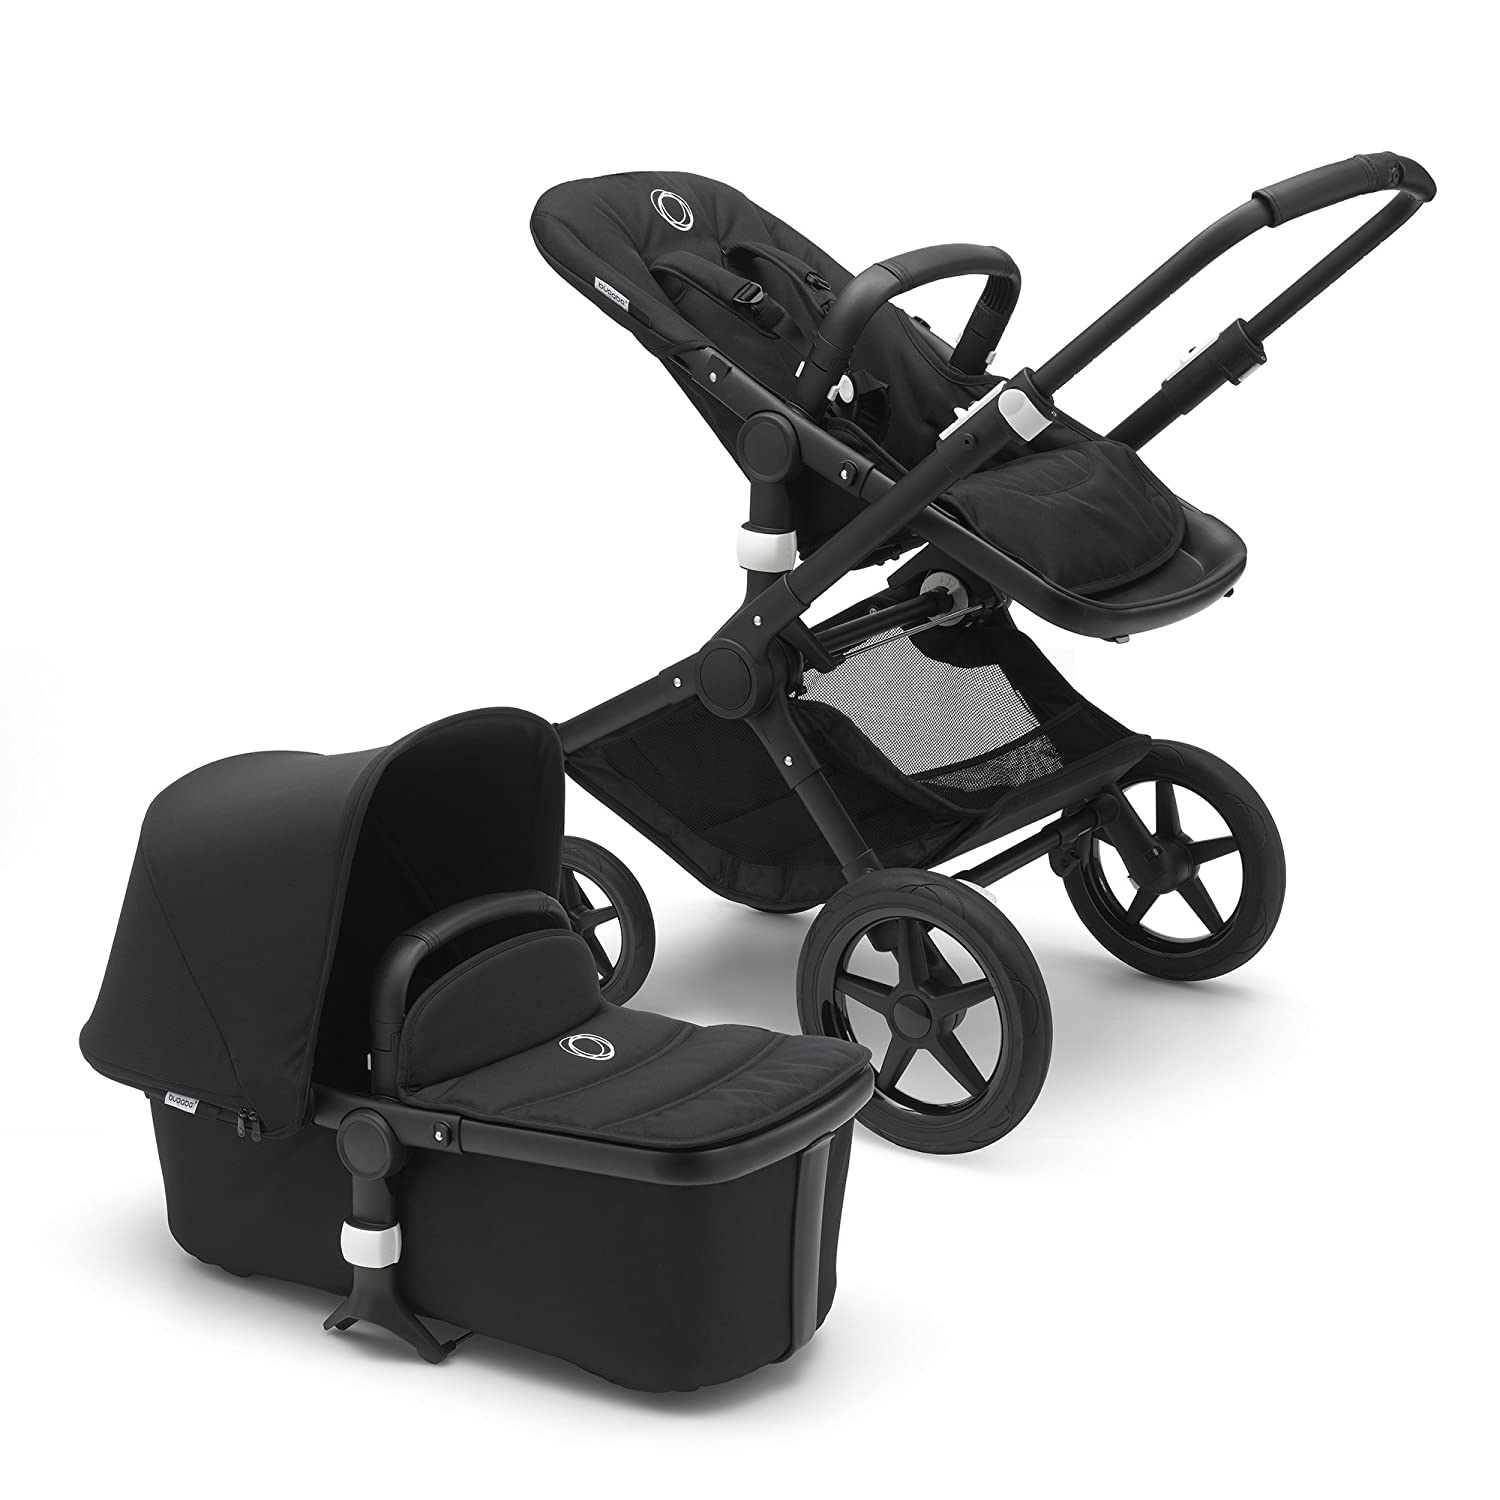 Bugaboo Fox Complete Full Size Stroller Black Fully Loaded Foldable Stroller With Advanced